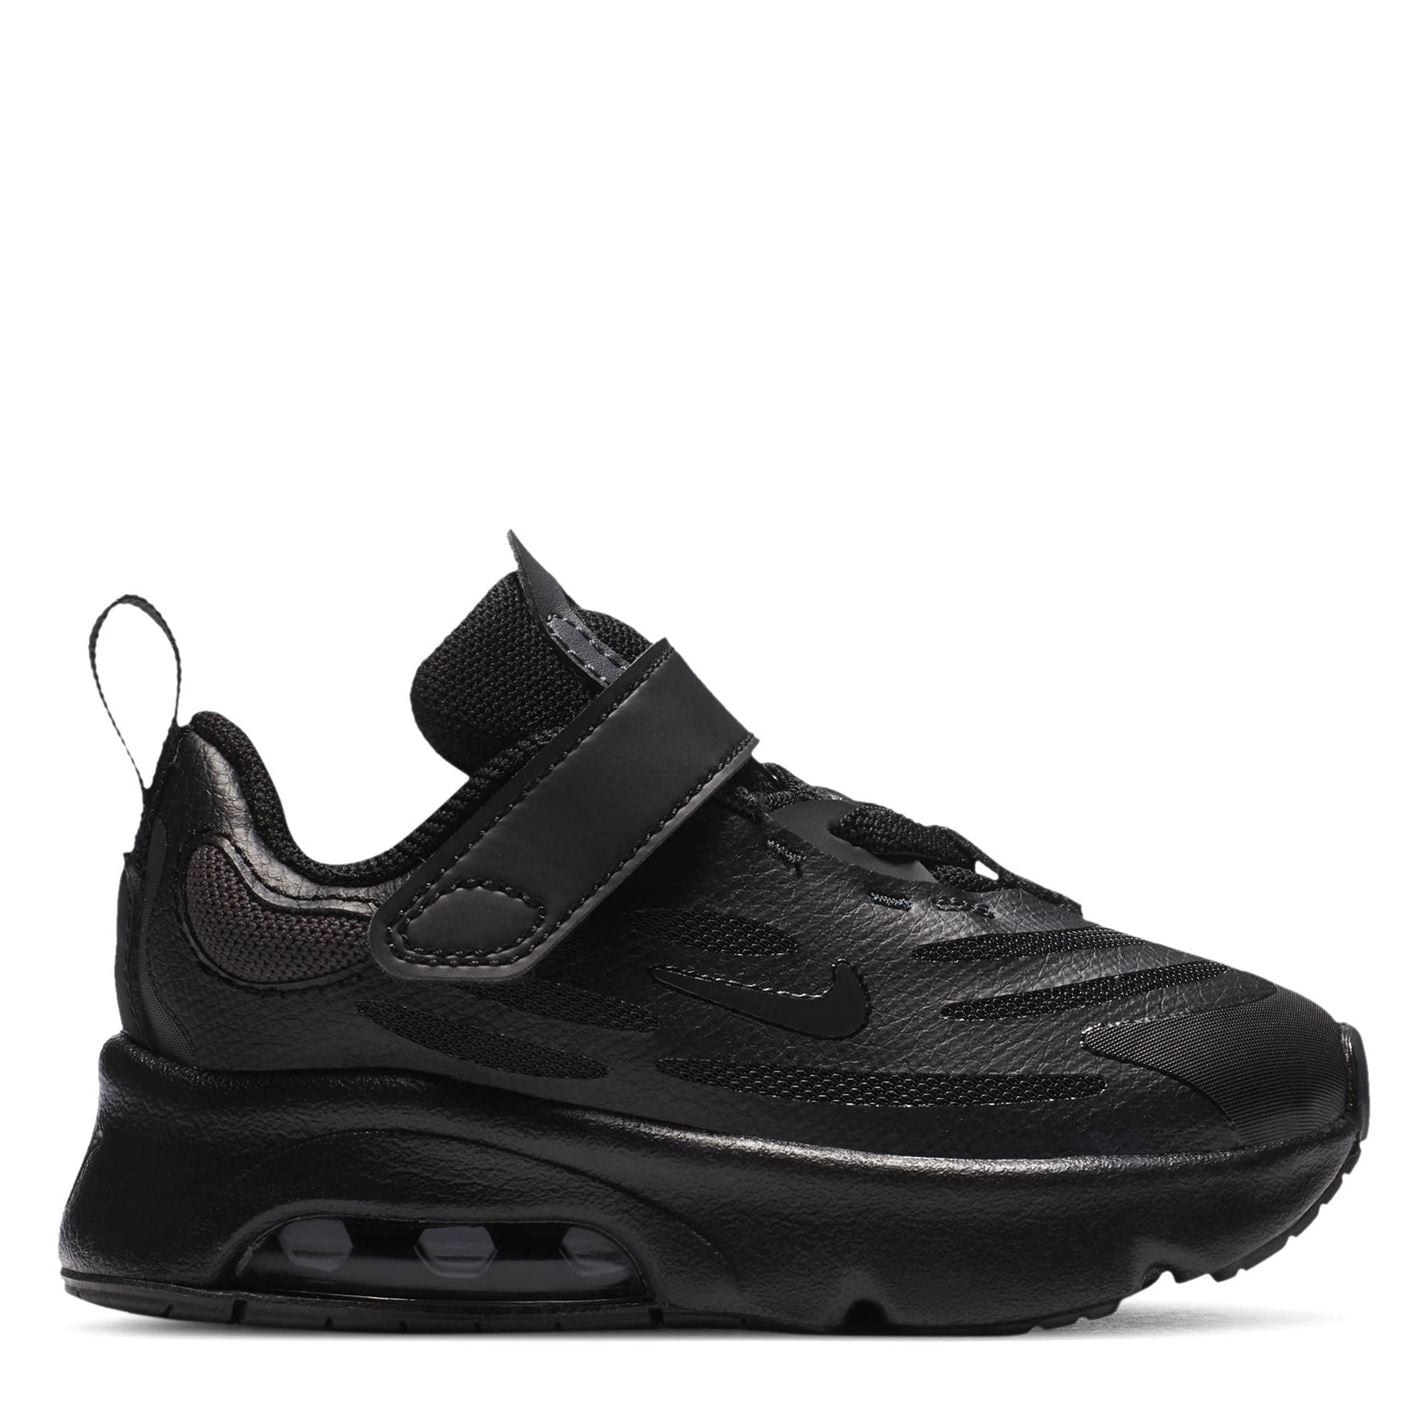 Nike Air Max Exosense Trainers Infants Black/Black